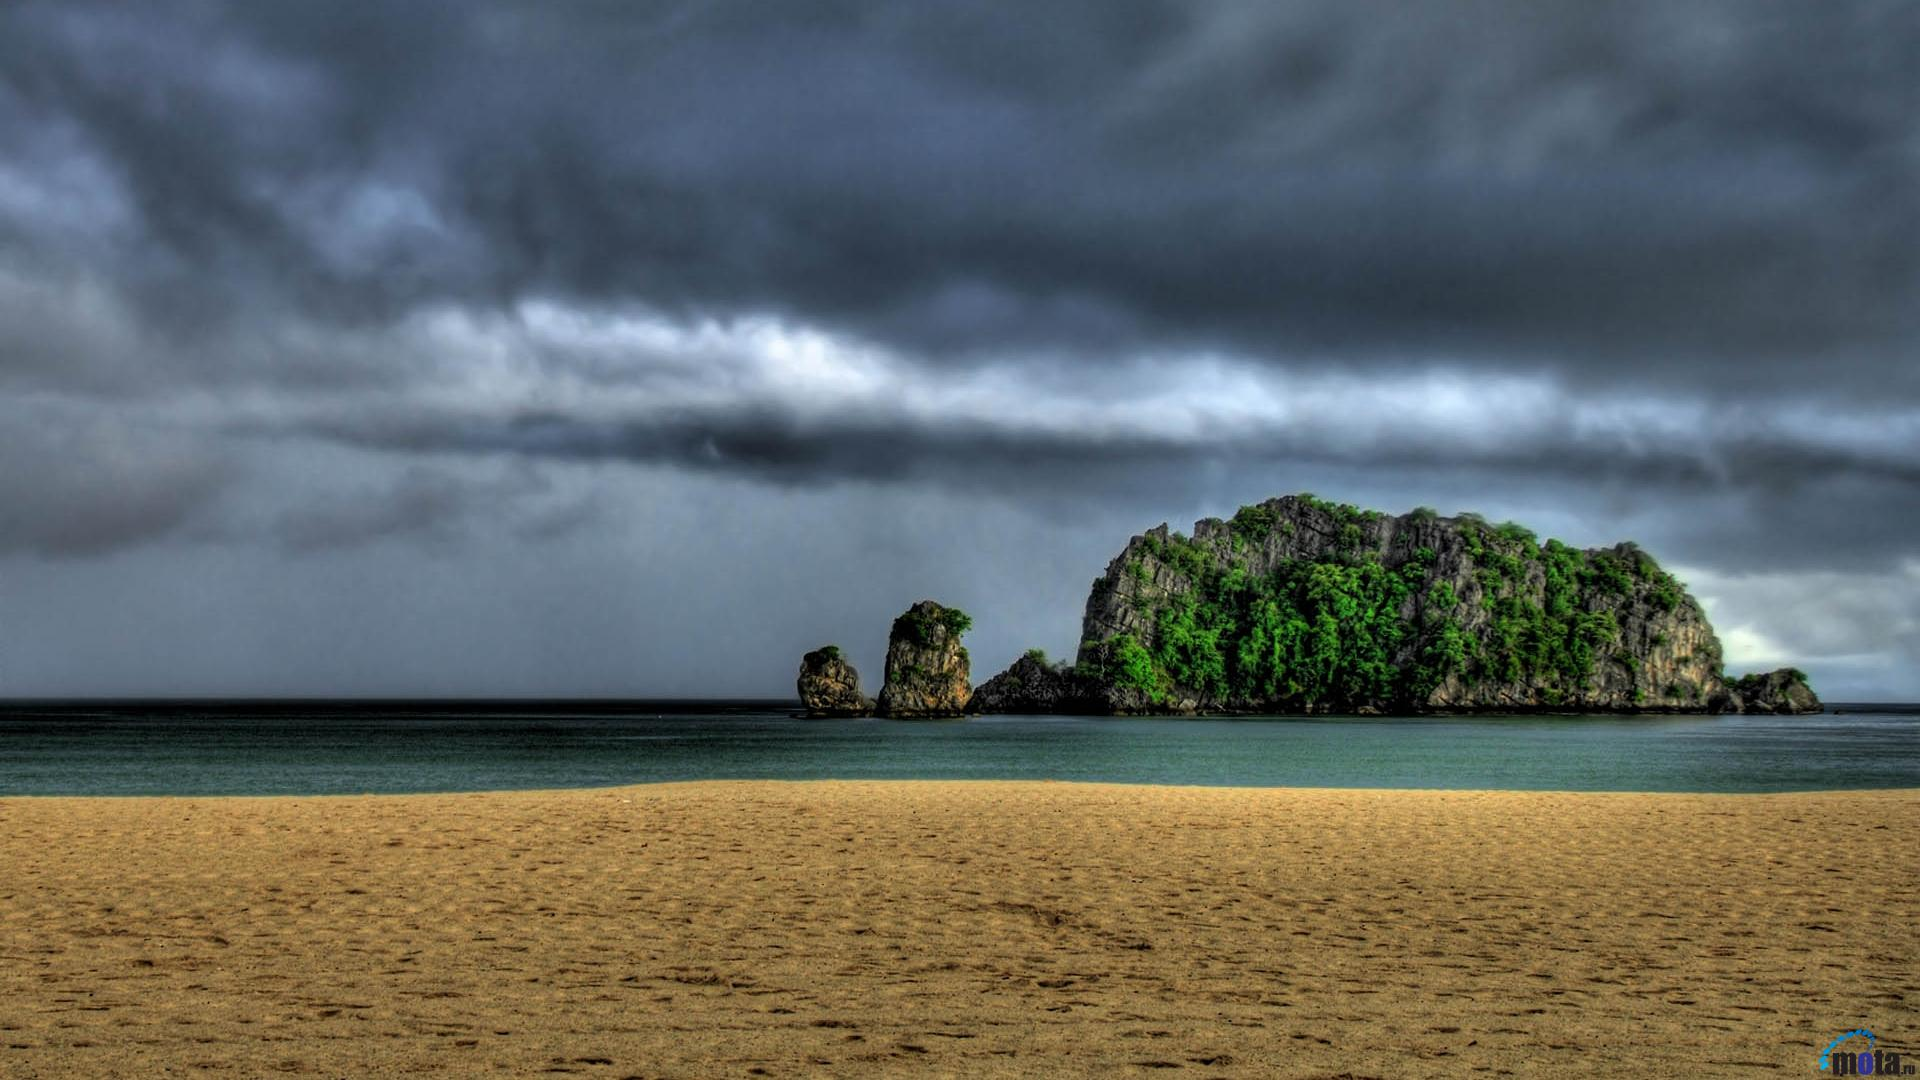 Download Wallpaper Storm clouds over the beach 1920 x 1080 HDTV 1080p 1920x1080